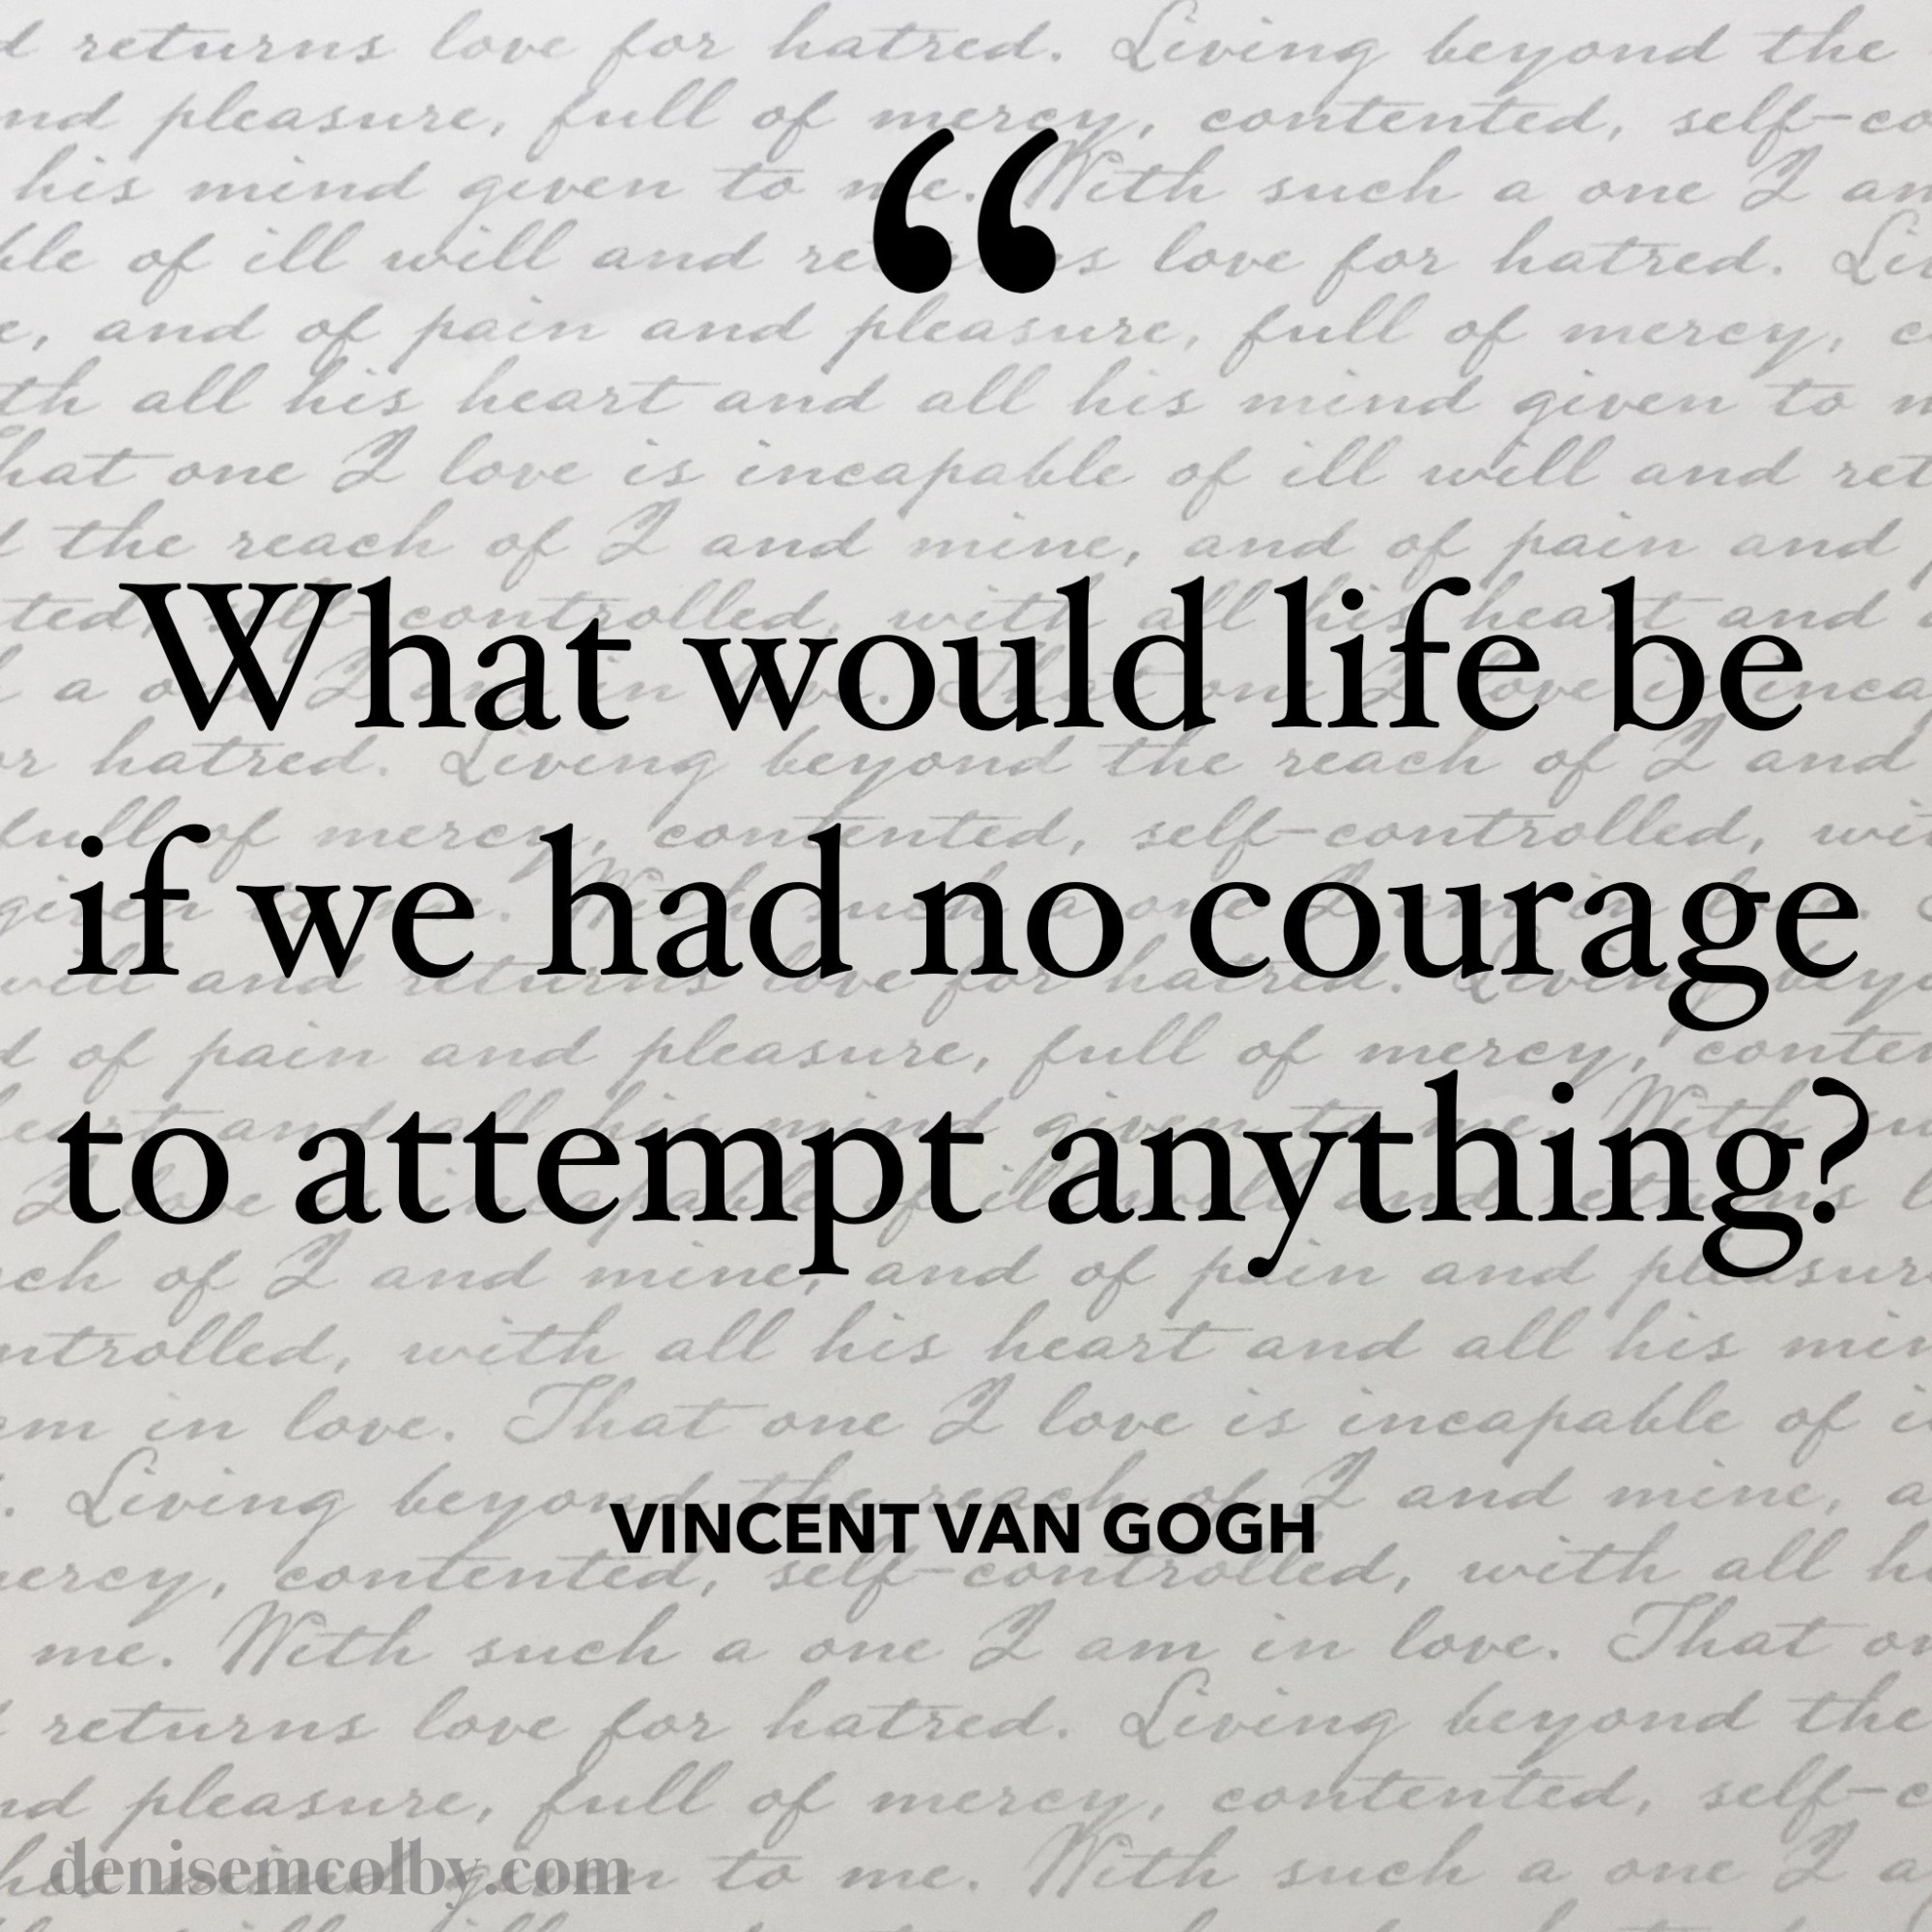 Vincent Van Gogh Quote about courage with cursive writing in the background